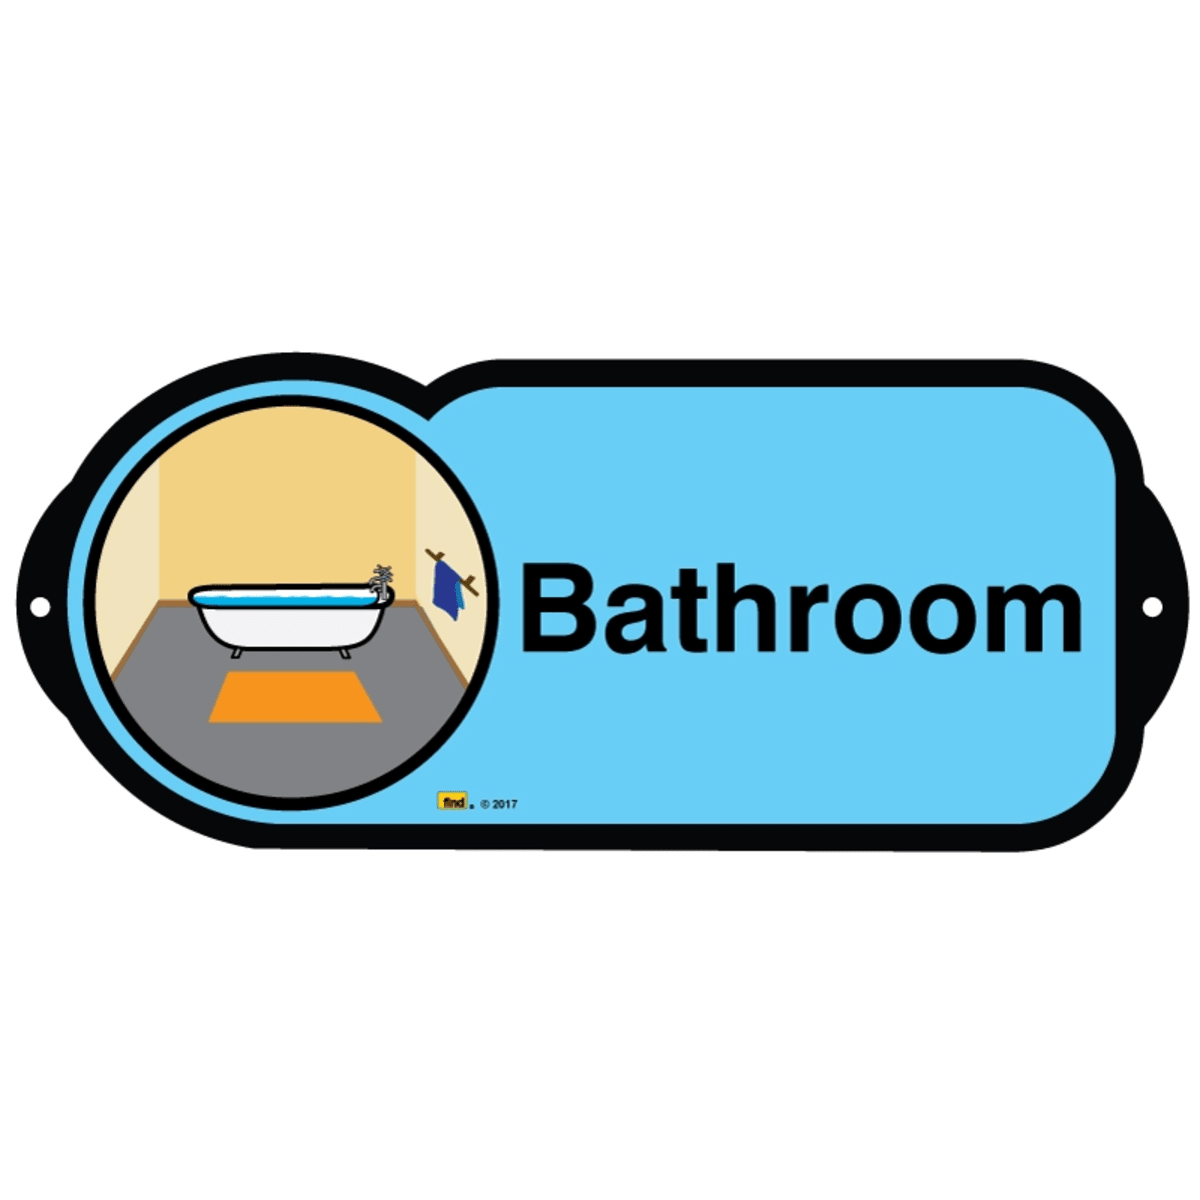 Bathroom sign for autism and learning disabilities - signage